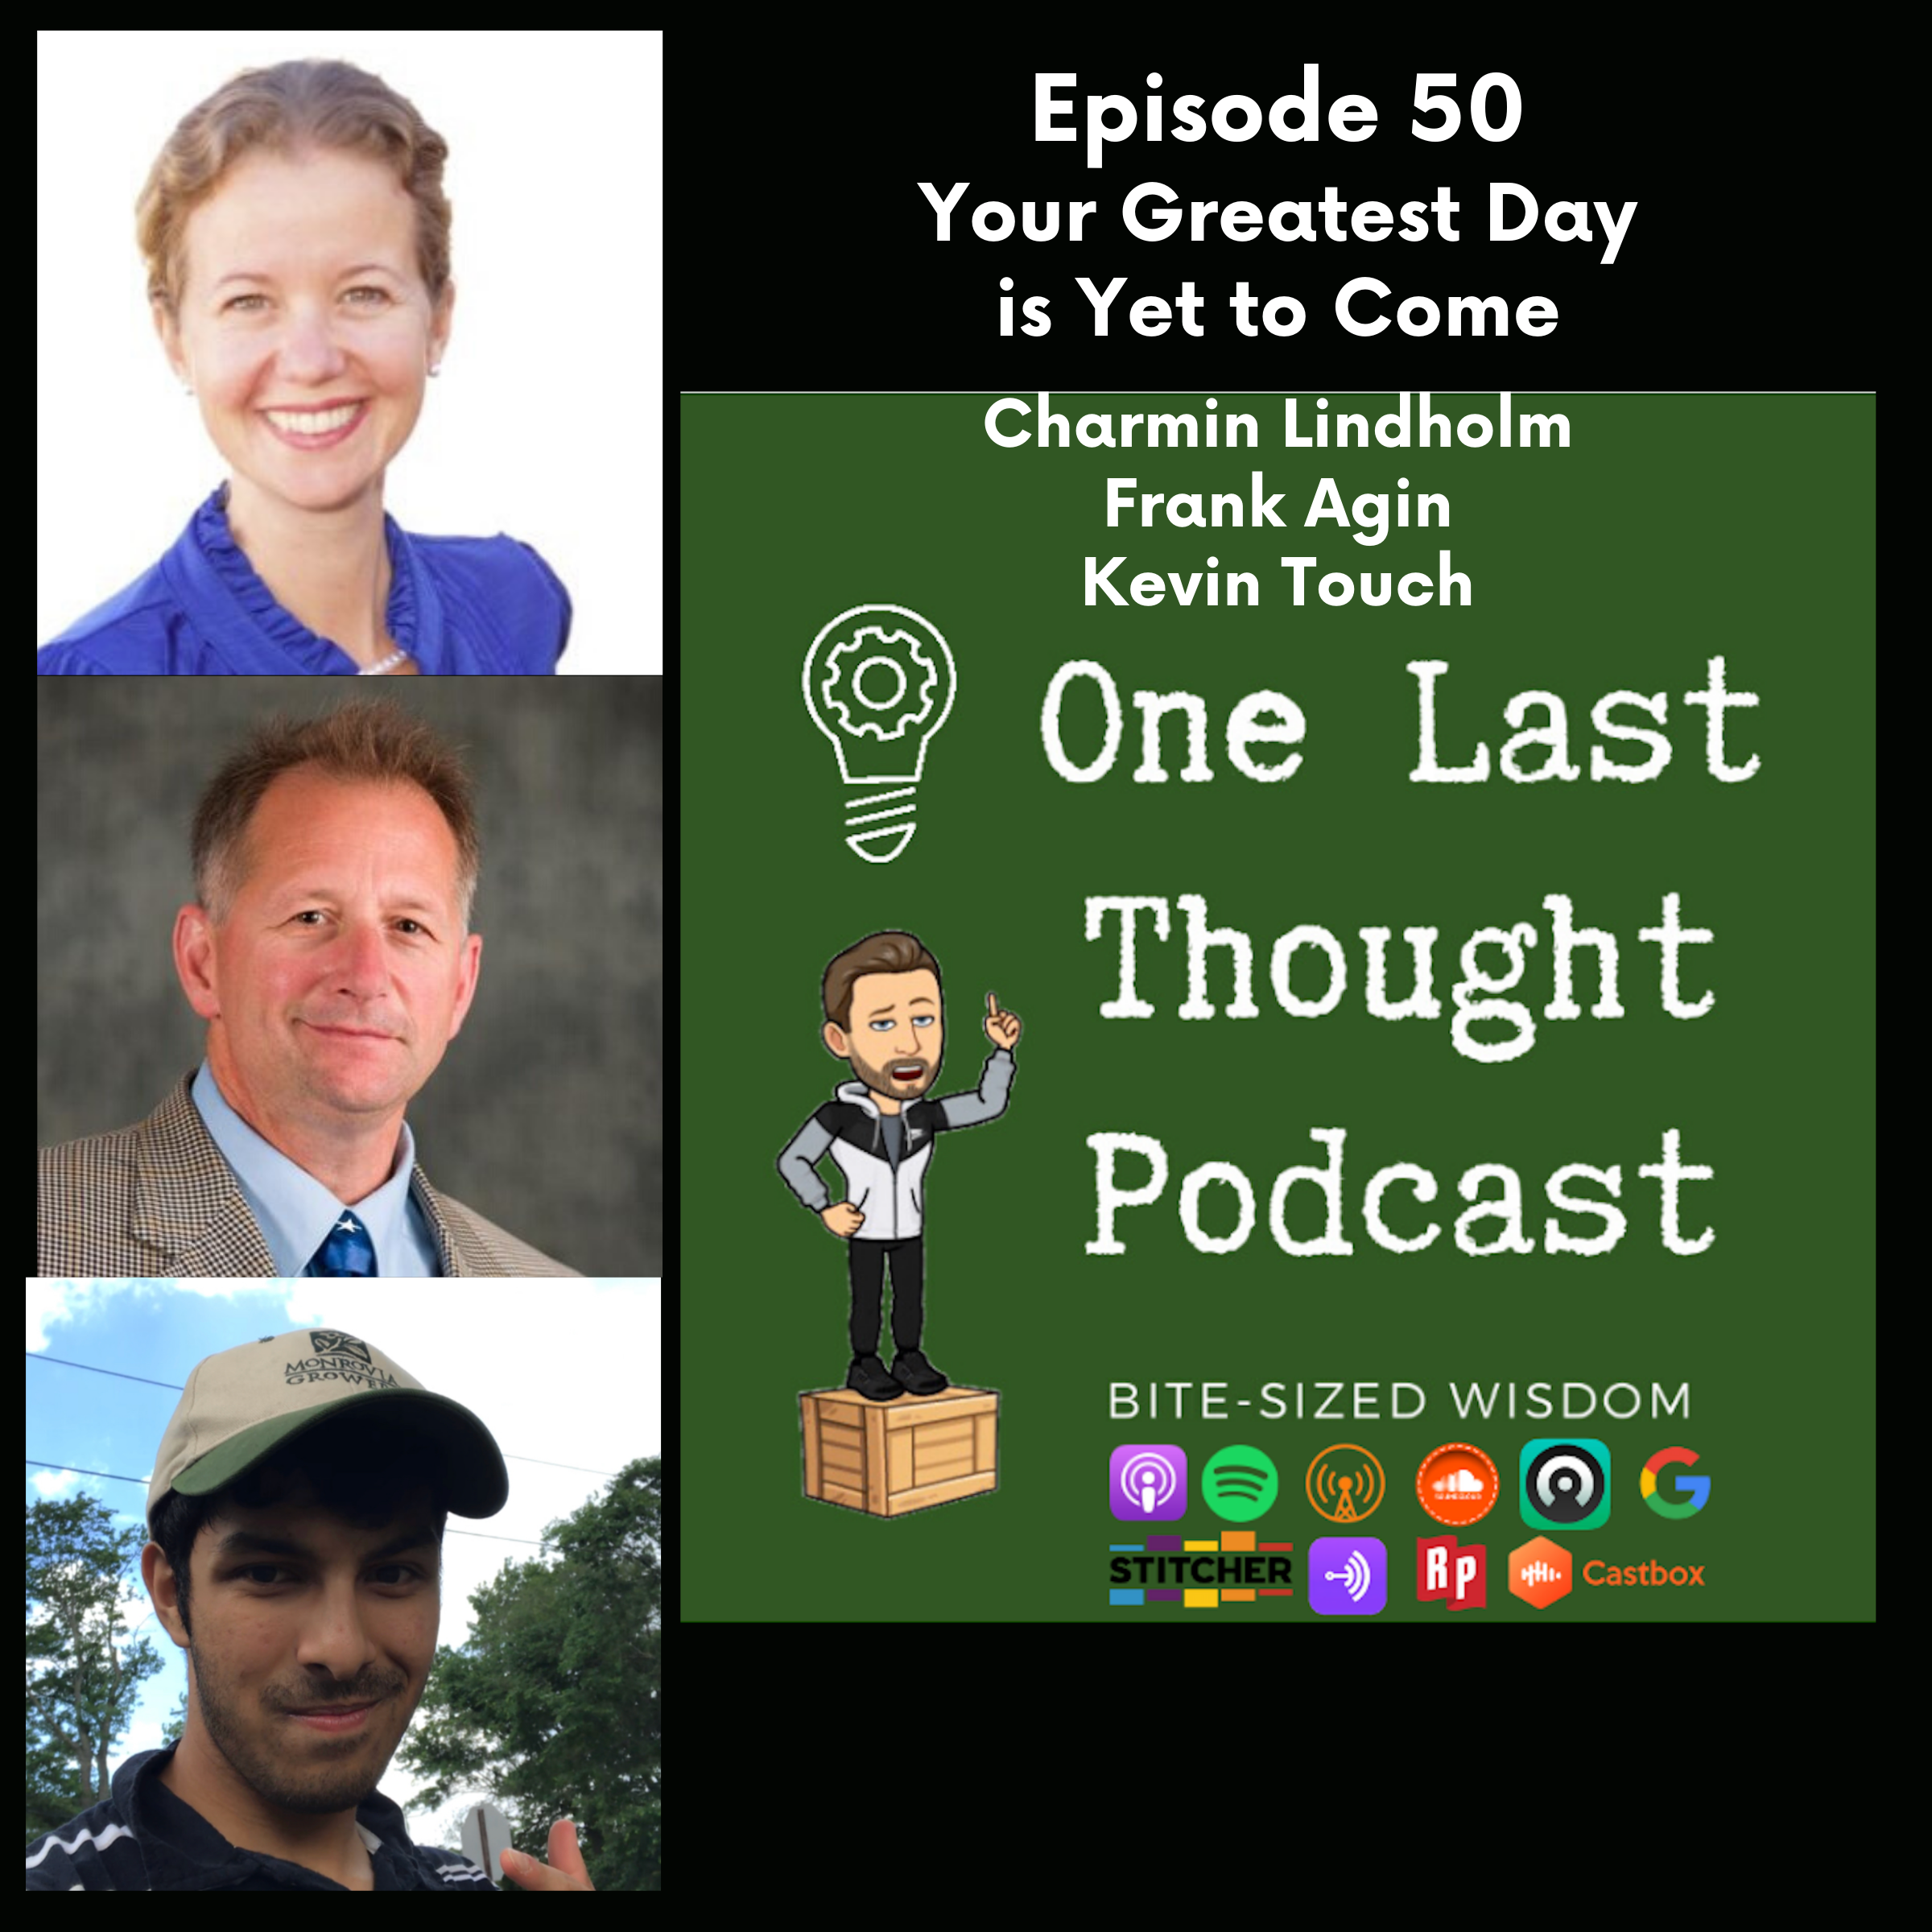 Your Greatest Day is Yet to Come - Charmin Lindholm, Frank Agin, and Kevin Touch - Episode 50 - A TRIPLE!